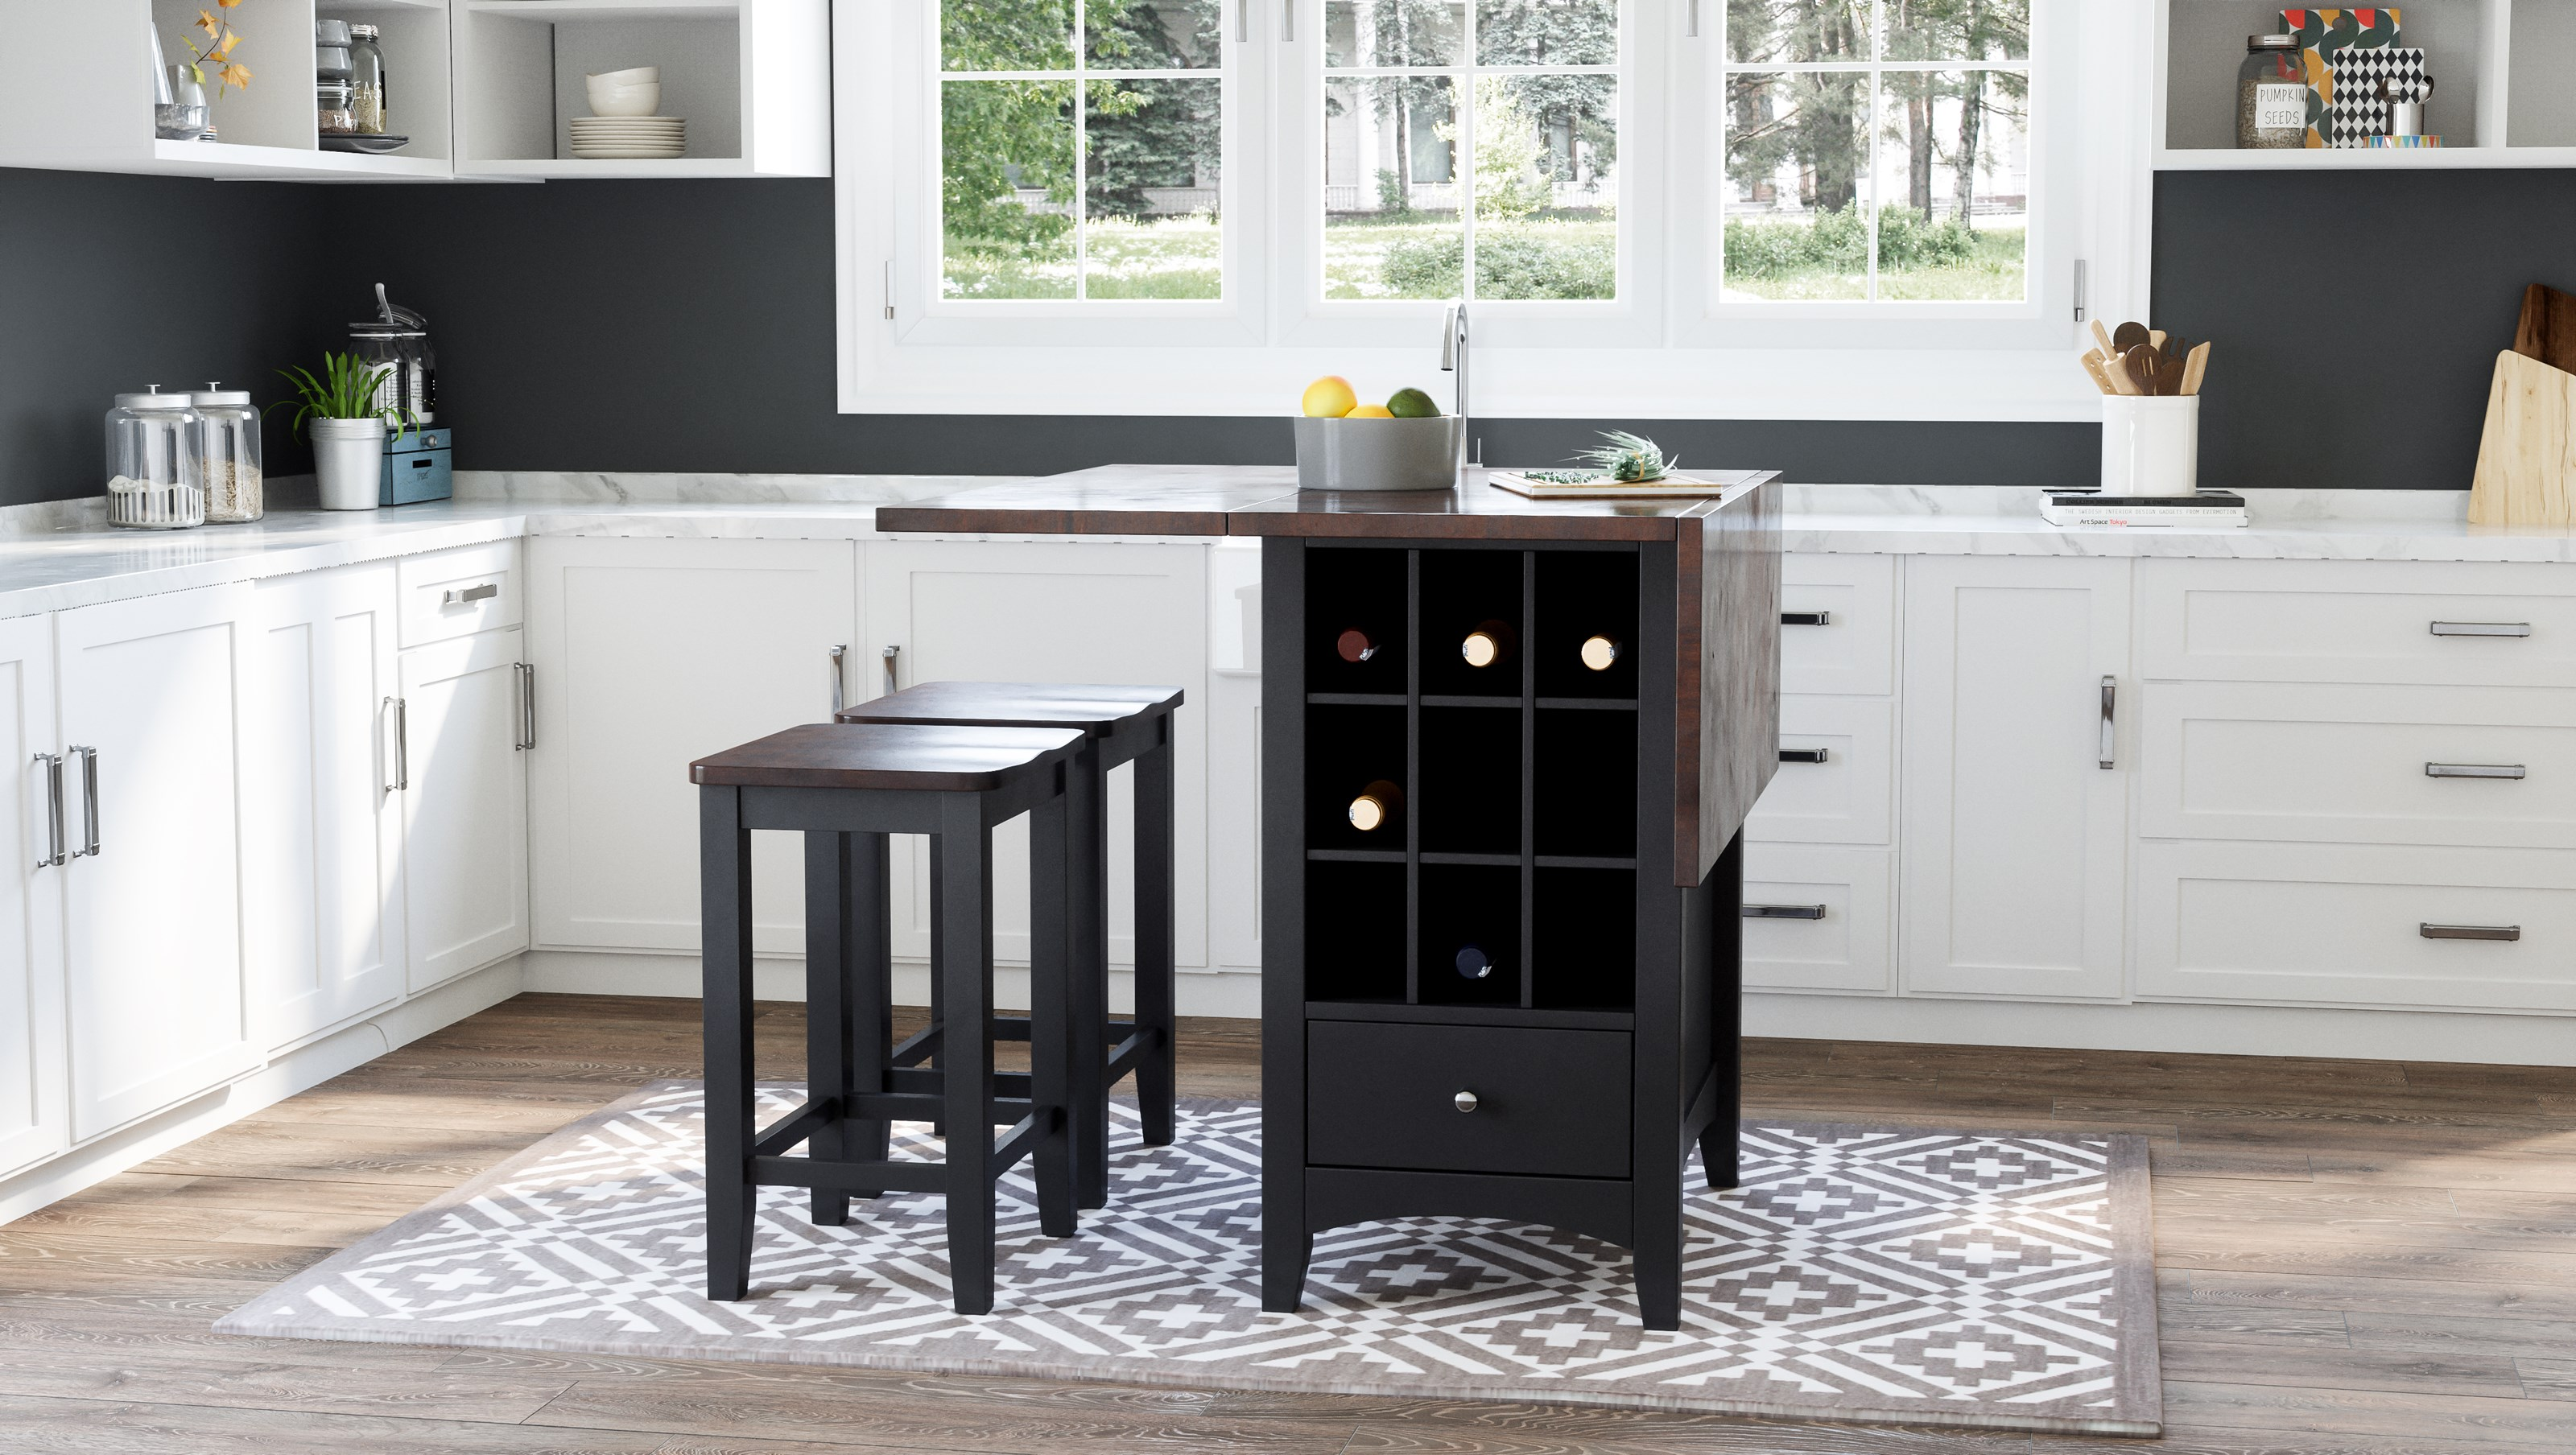 Asbury Park 3-Piece Counter Height Table and Stool Set by Jofran at Jofran